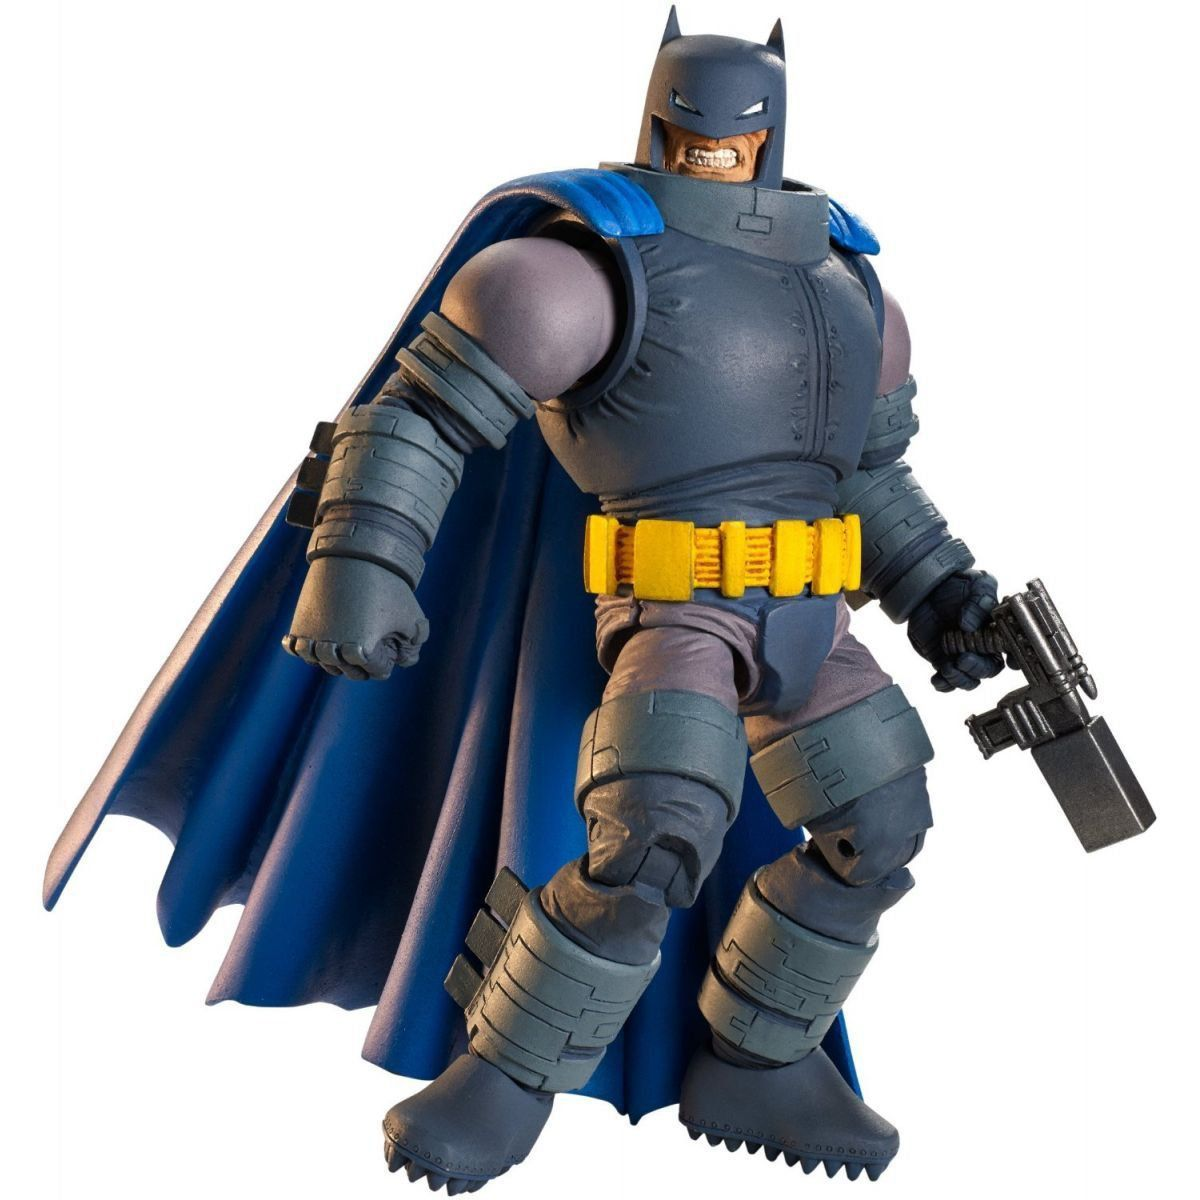 Boneco Armored Batman: DC Comics Multiverse: The Dark Knight Returns - Mattel